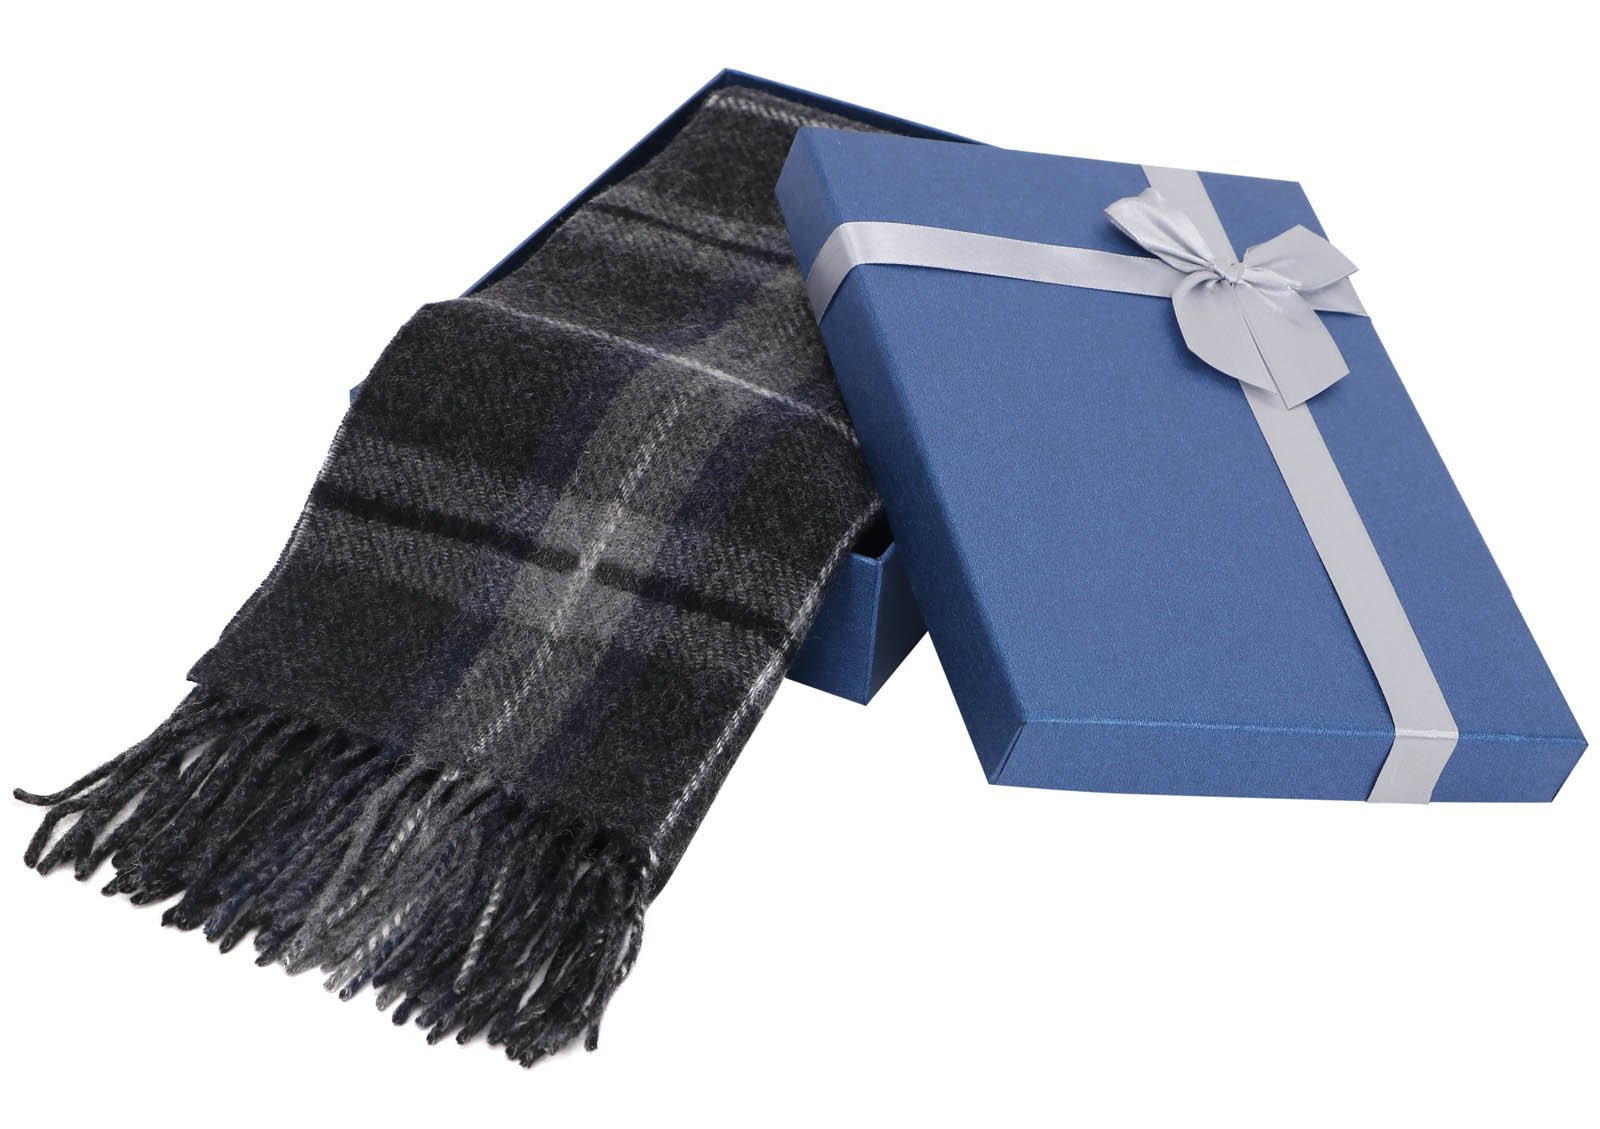 Luxurious Women's Cashmere Scarf Winter Shawls w/ Gift Box, 64.5'' x 11.8'' by Livingston (Image #2)